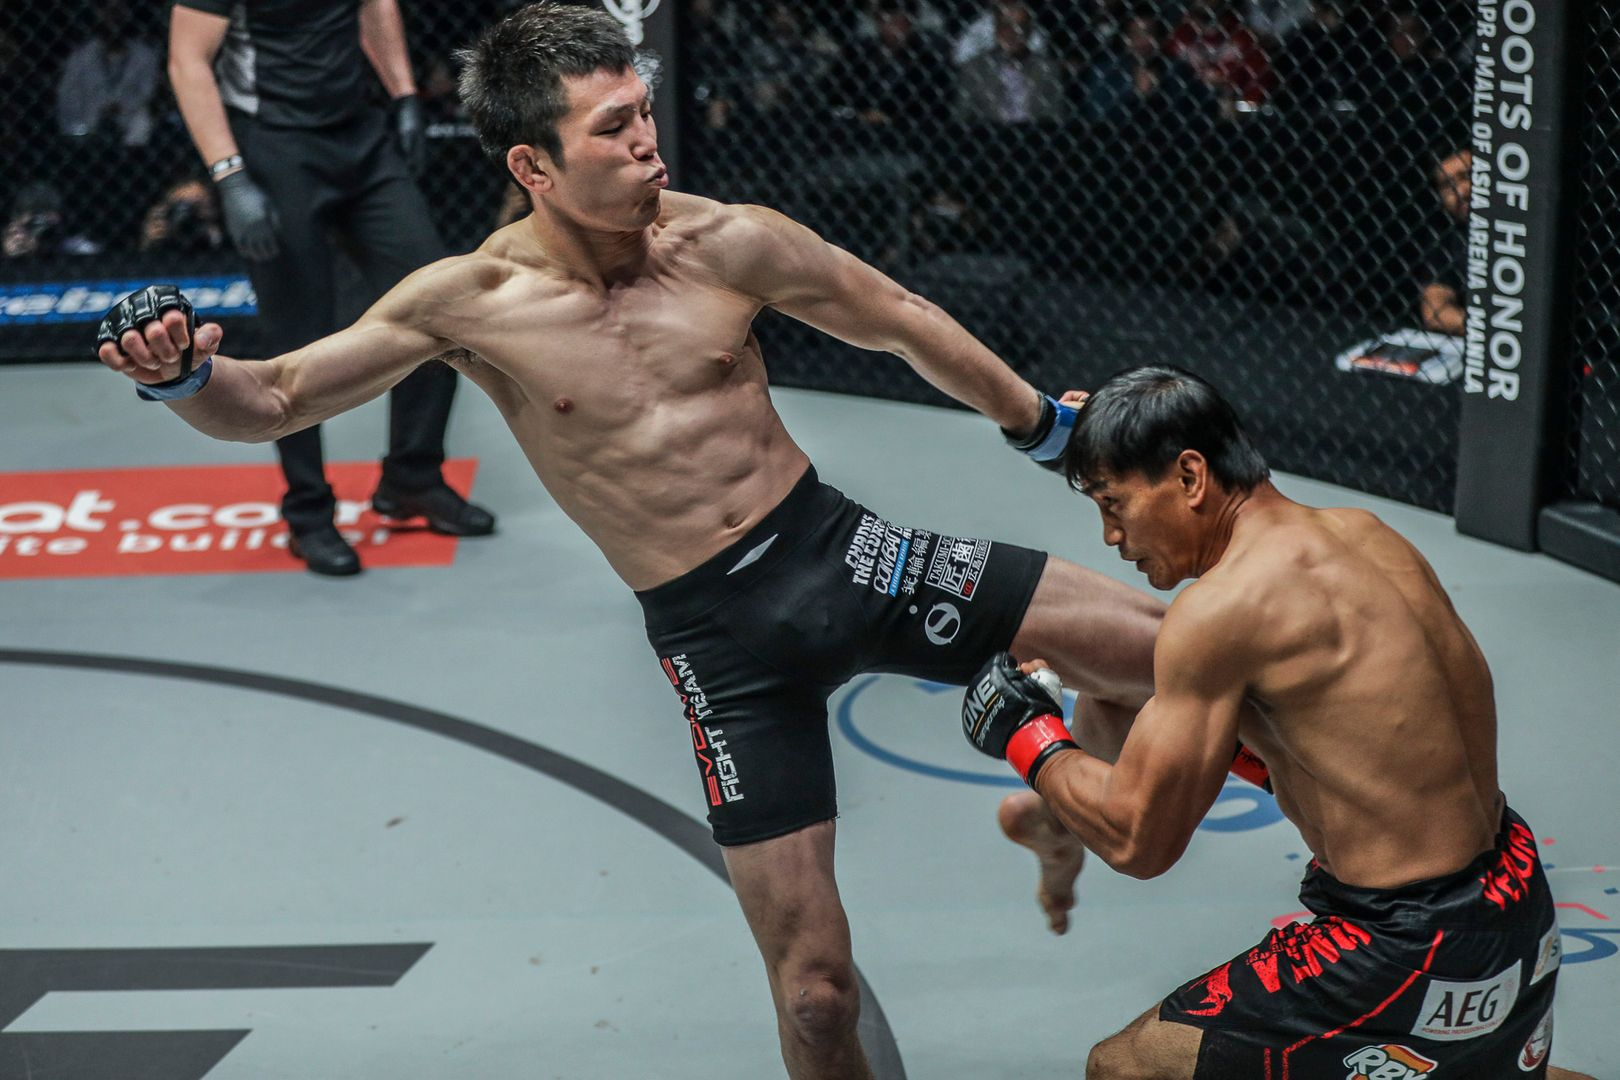 Shinya Aoki attacks Eduard Folayang at ONE: A NEW ERA